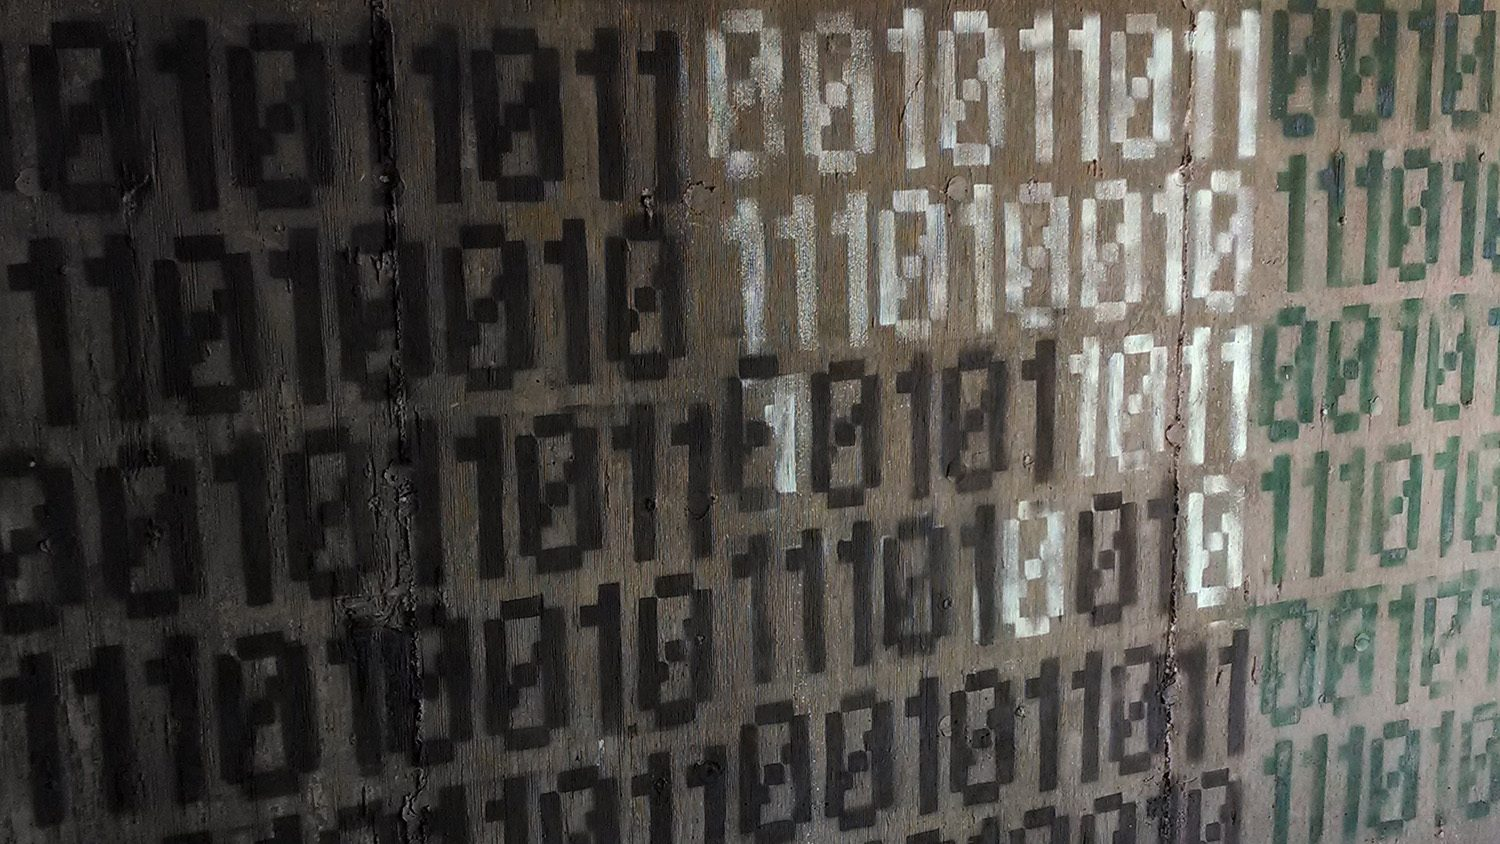 binary code spraypainted on wall